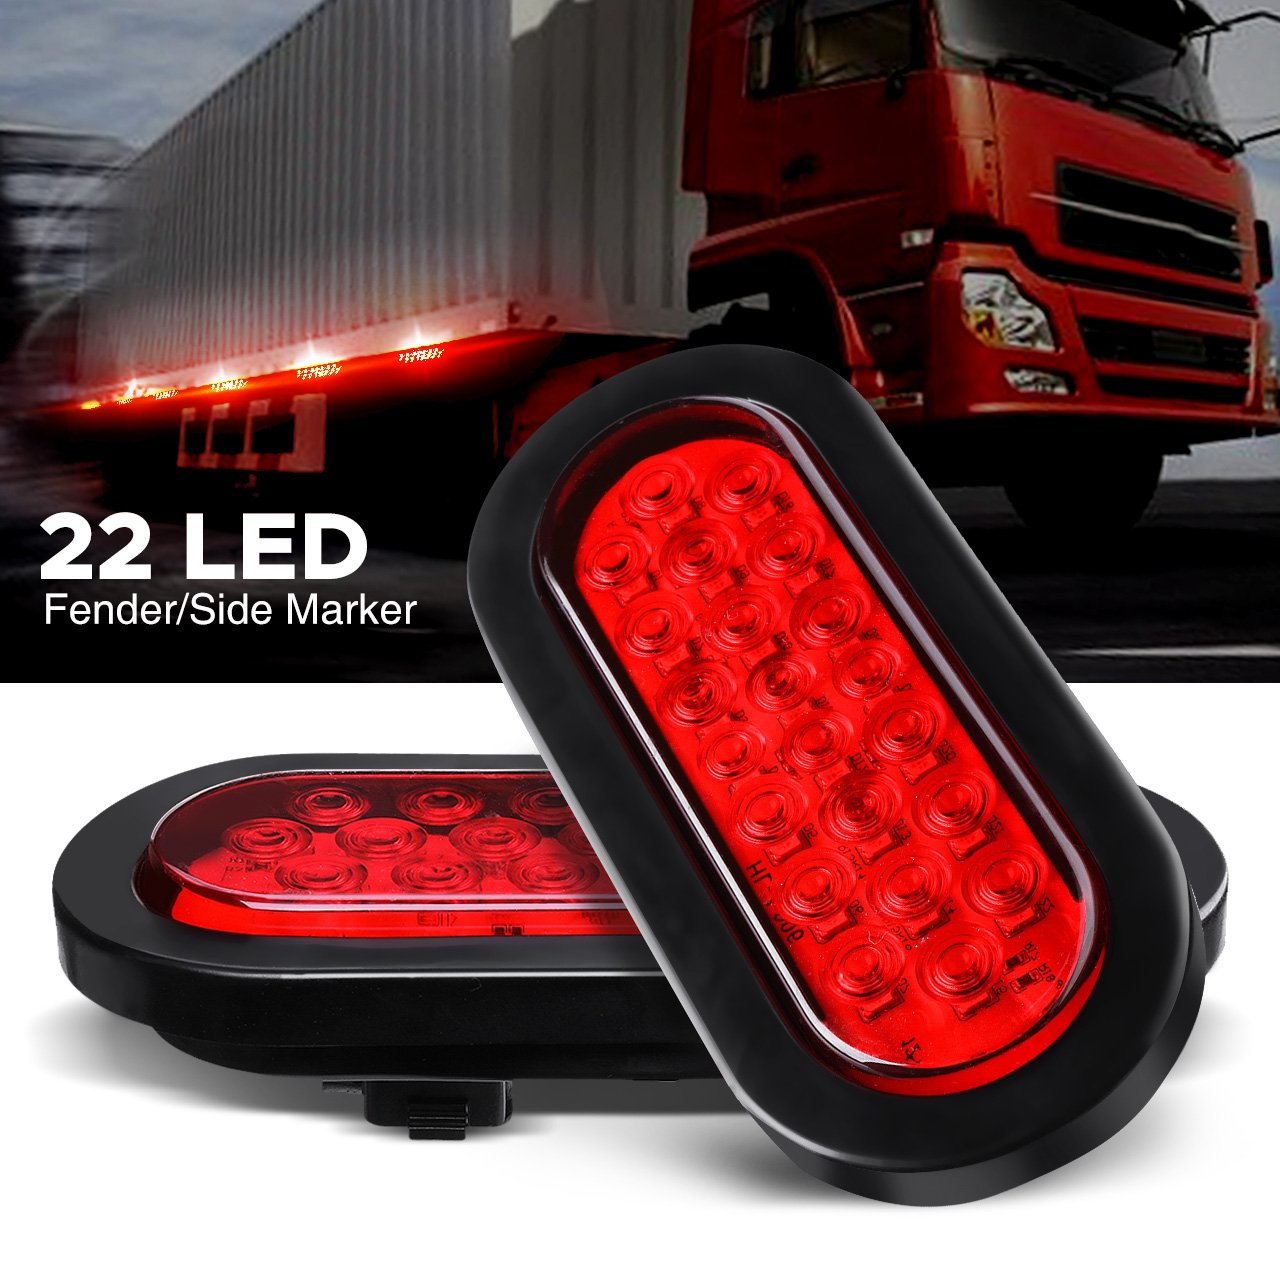 Audew 2Pcs 6-inch Oval LED Trailer Tail Lights, Red Brakes/Marker Lights for Truck,Boat,Trailer,Bus,IP65 Waterproof,DC 12V